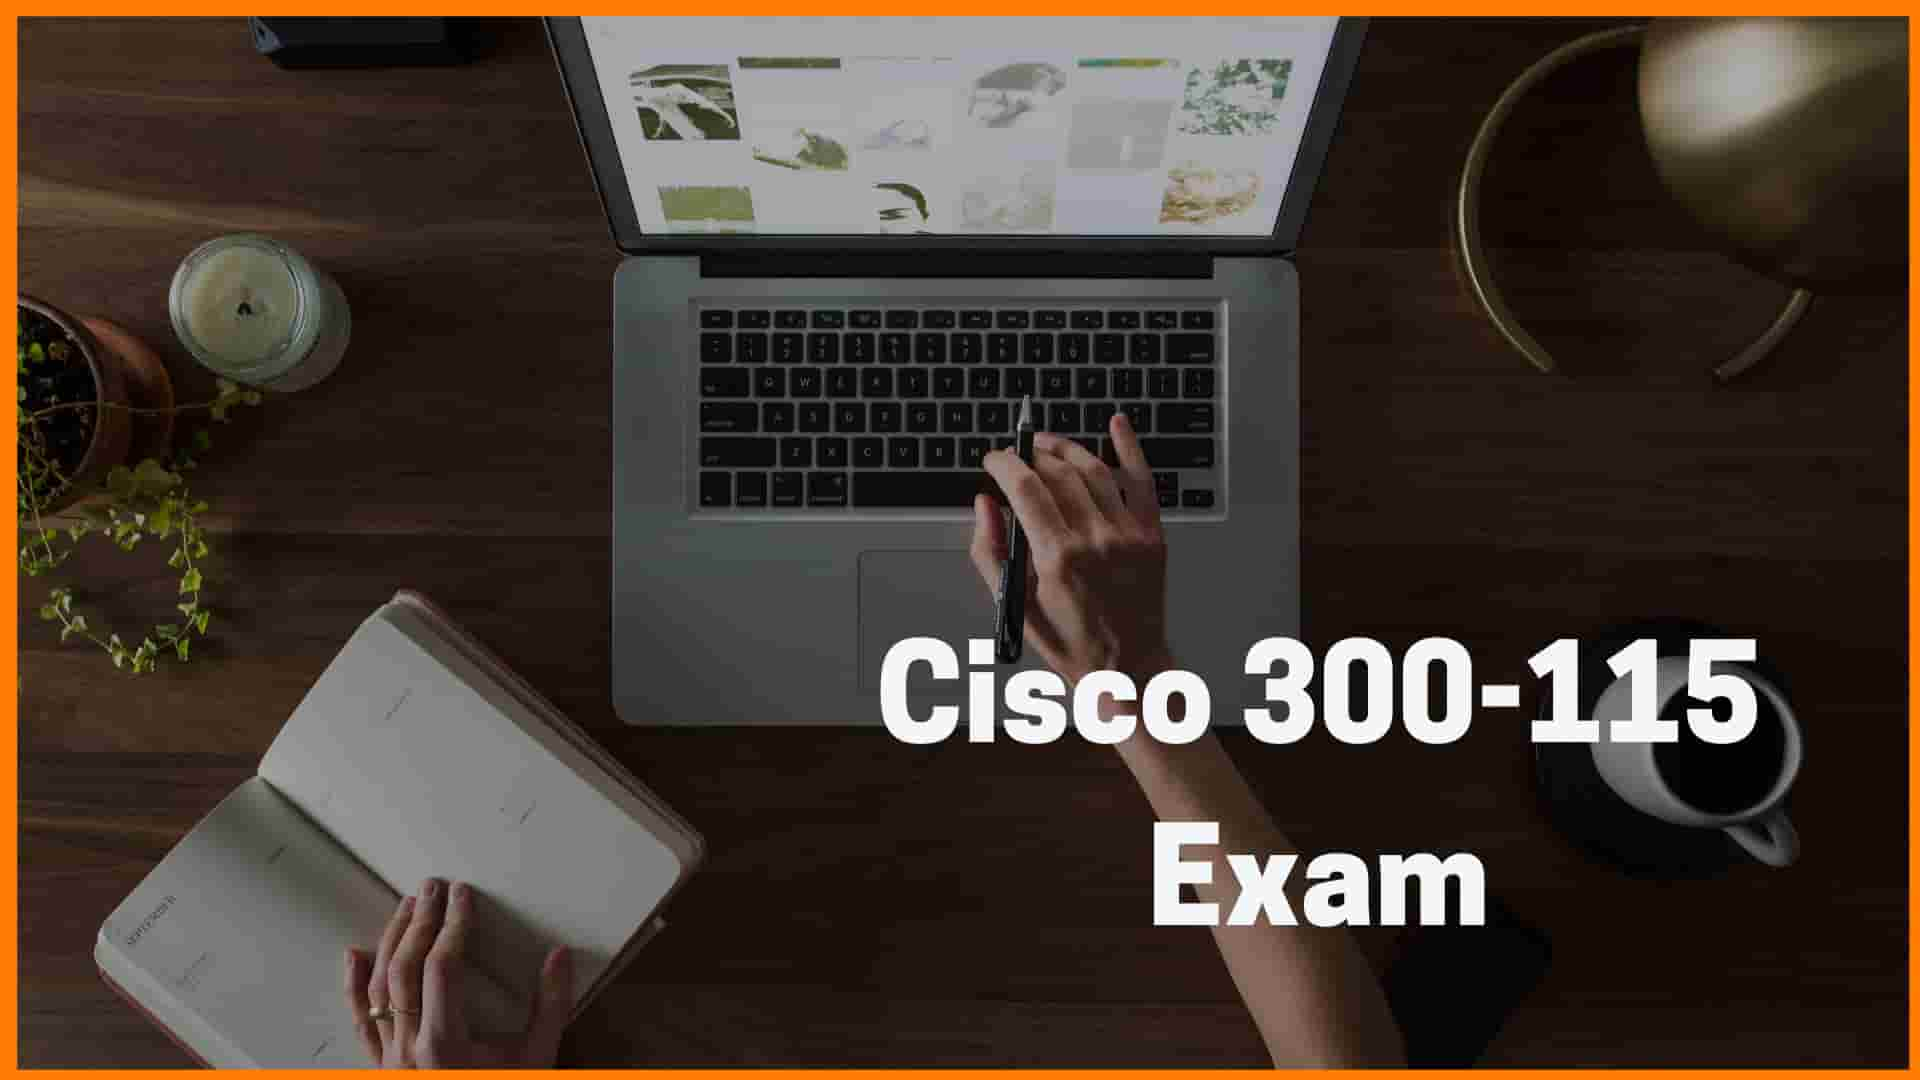 Cisco 300-115 Exam: Reasons to Pass and How to Succeed in it through Using Exam Dumps